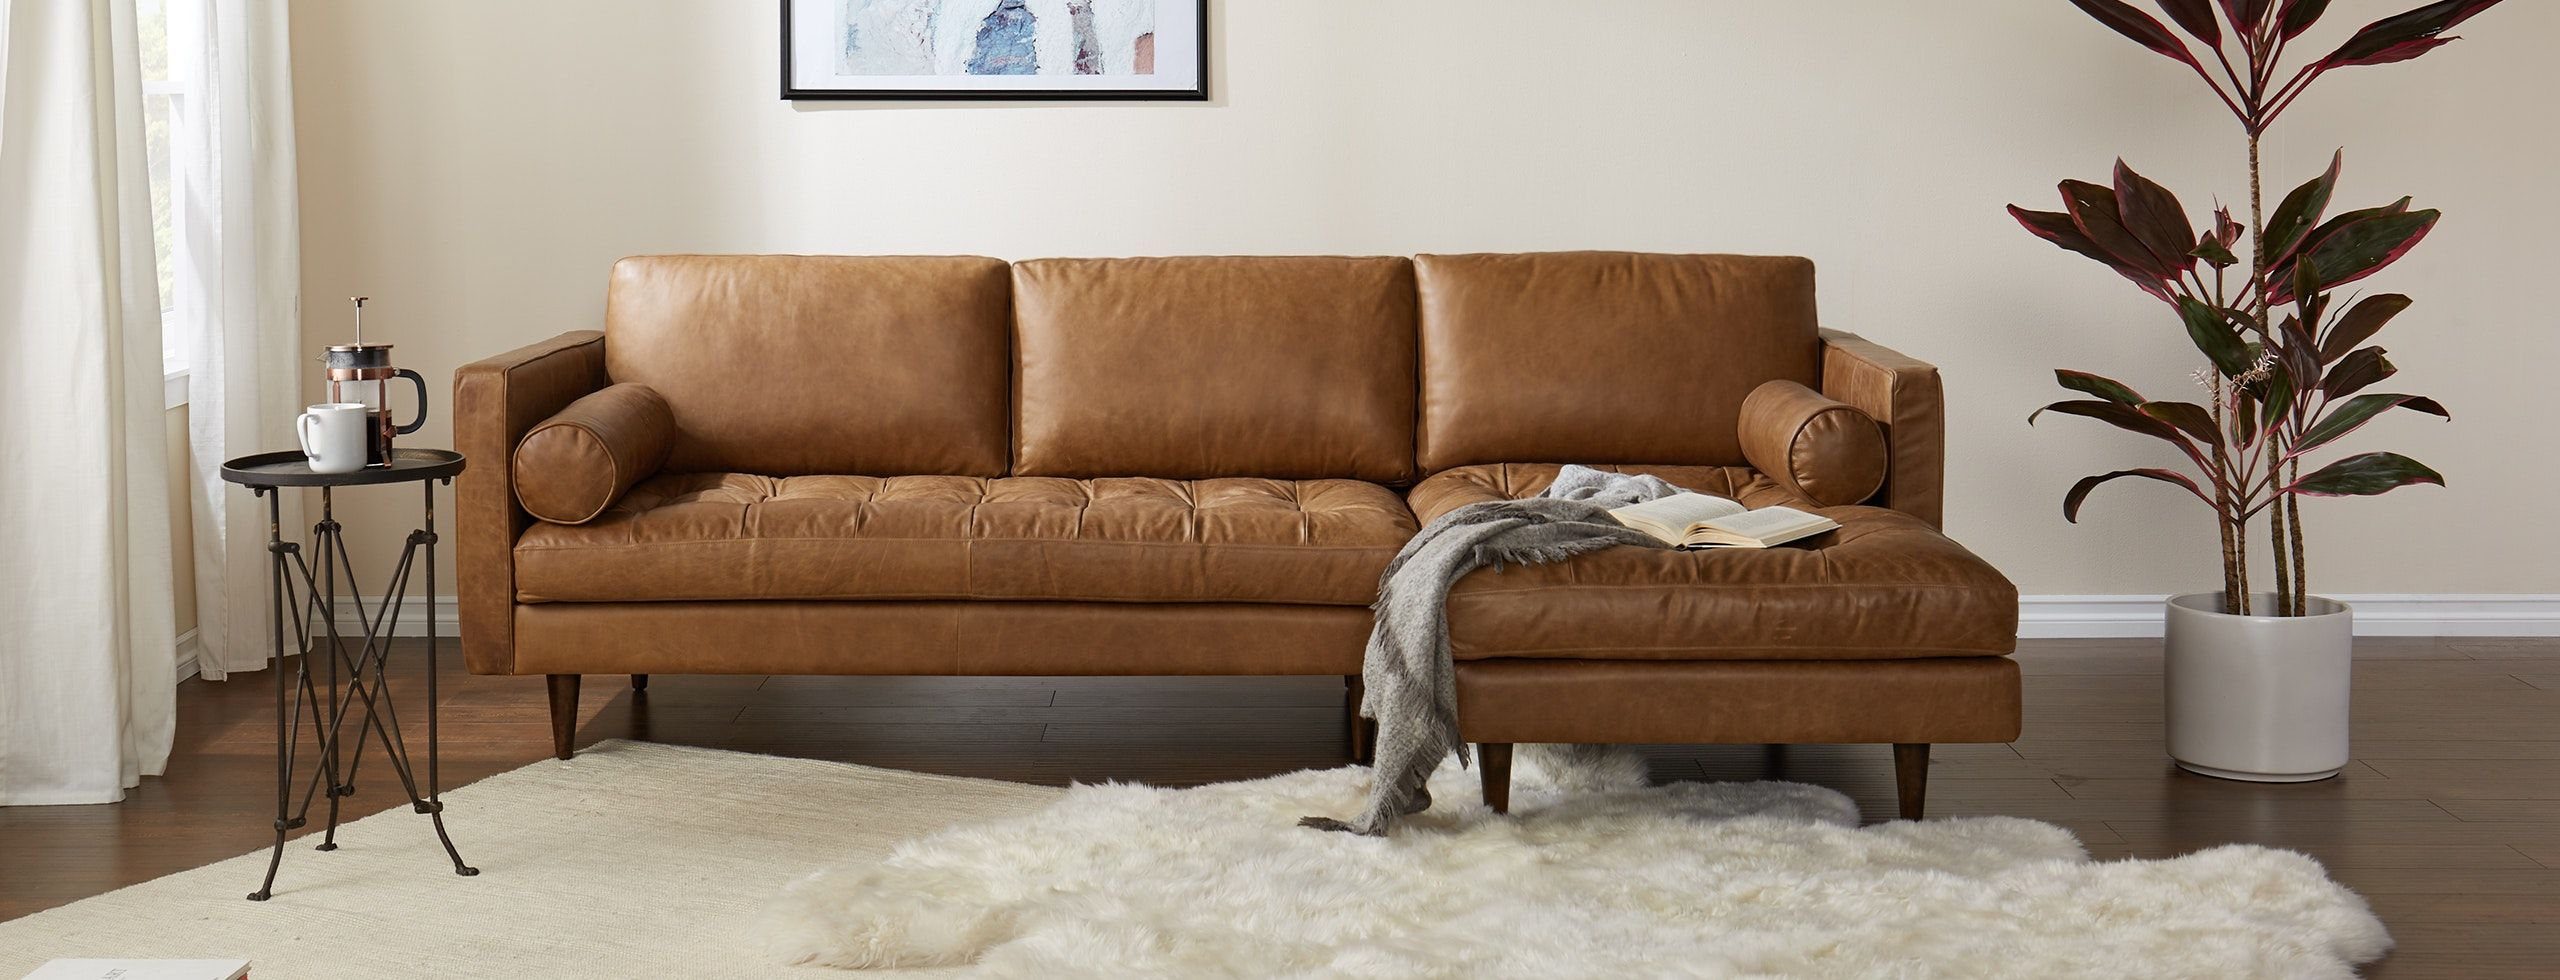 Indulge In Your Love Of Mid Century Modern With A Cozy Leather Chaise Sectional That Boasts But Modern Leather Sectional Leather Sectional Sectional Sofa Couch